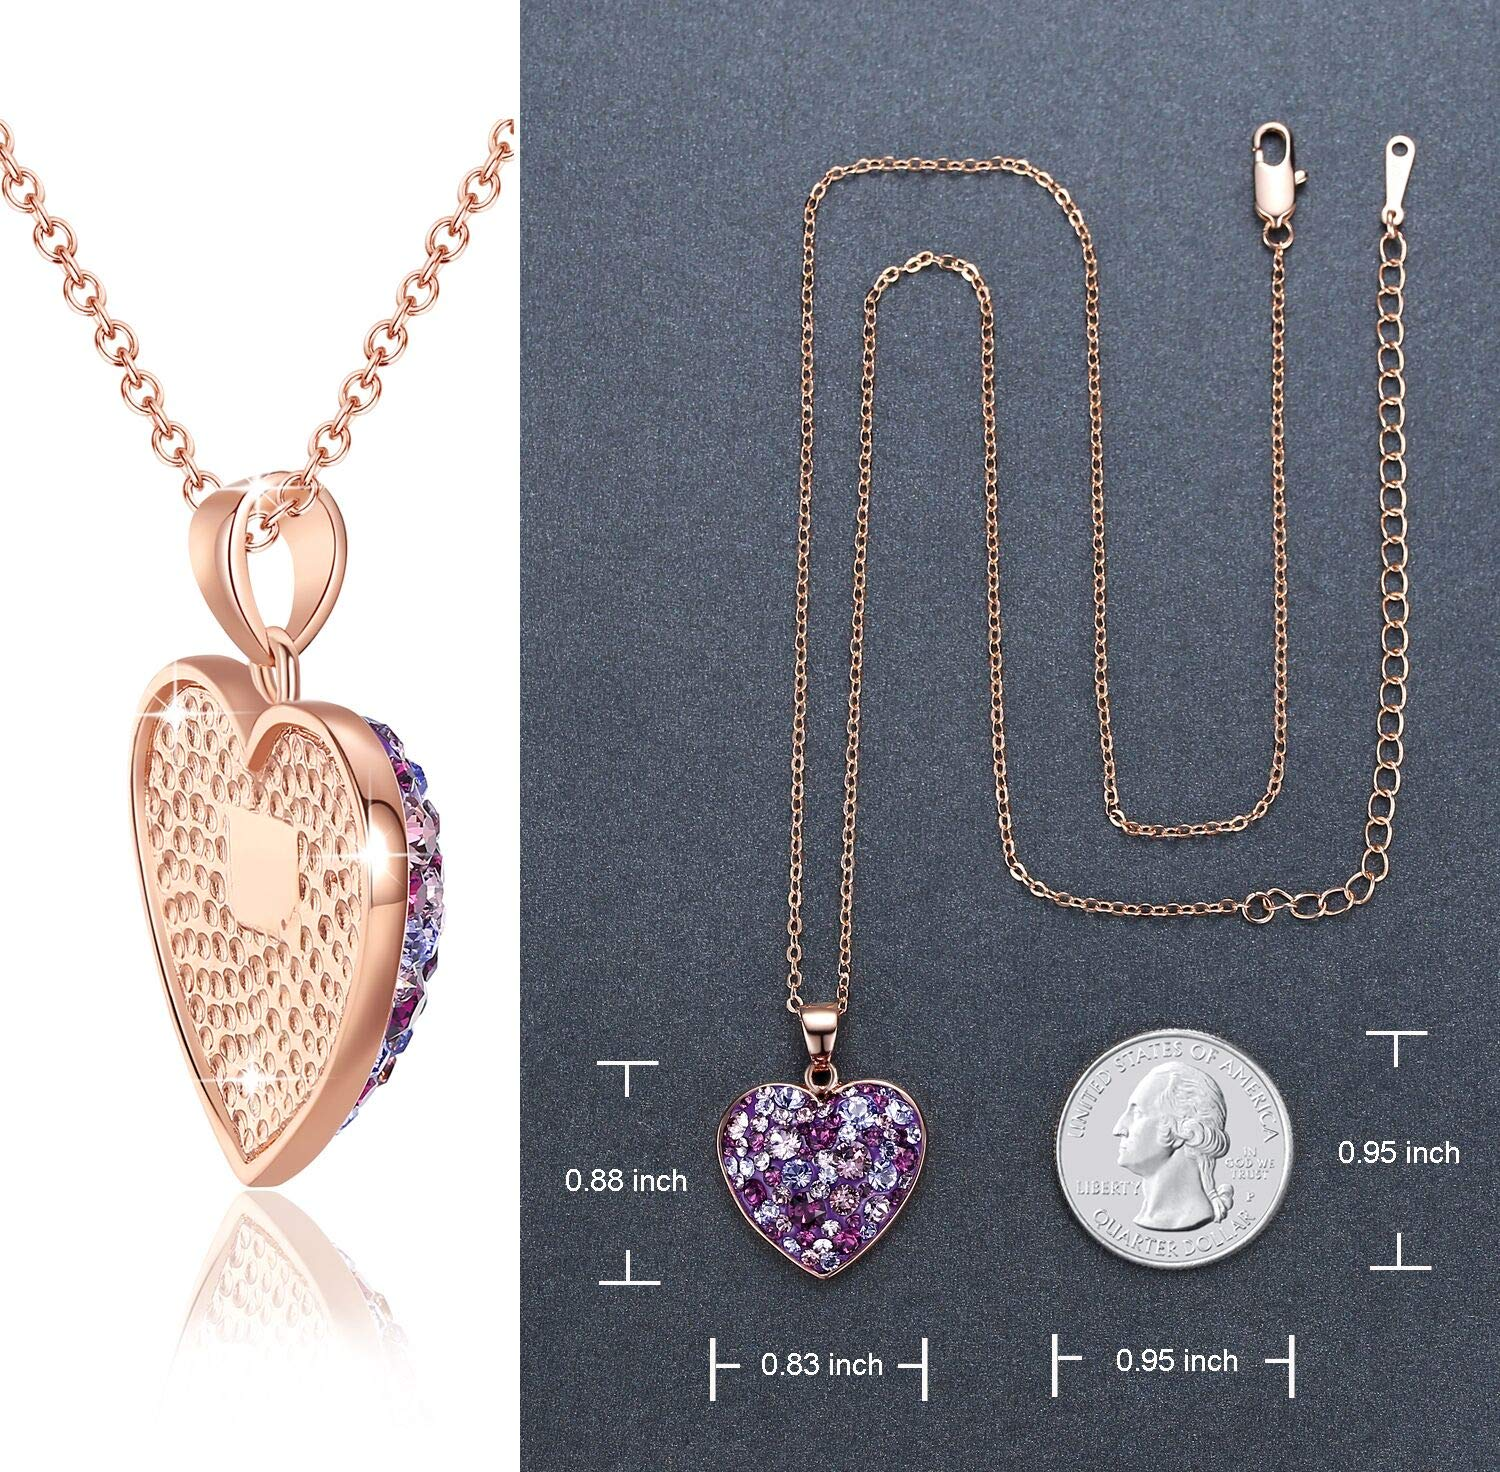 Esottia Multi-Stone Heart Pendant Necklace Fill Your Heart with Love Made with Swarovski Crystals 18K Rose Gold Plated 18''+2'' Love Heart Necklace Color Purple for Girlfriend Wife Mother Daughter by Esottia (Image #4)